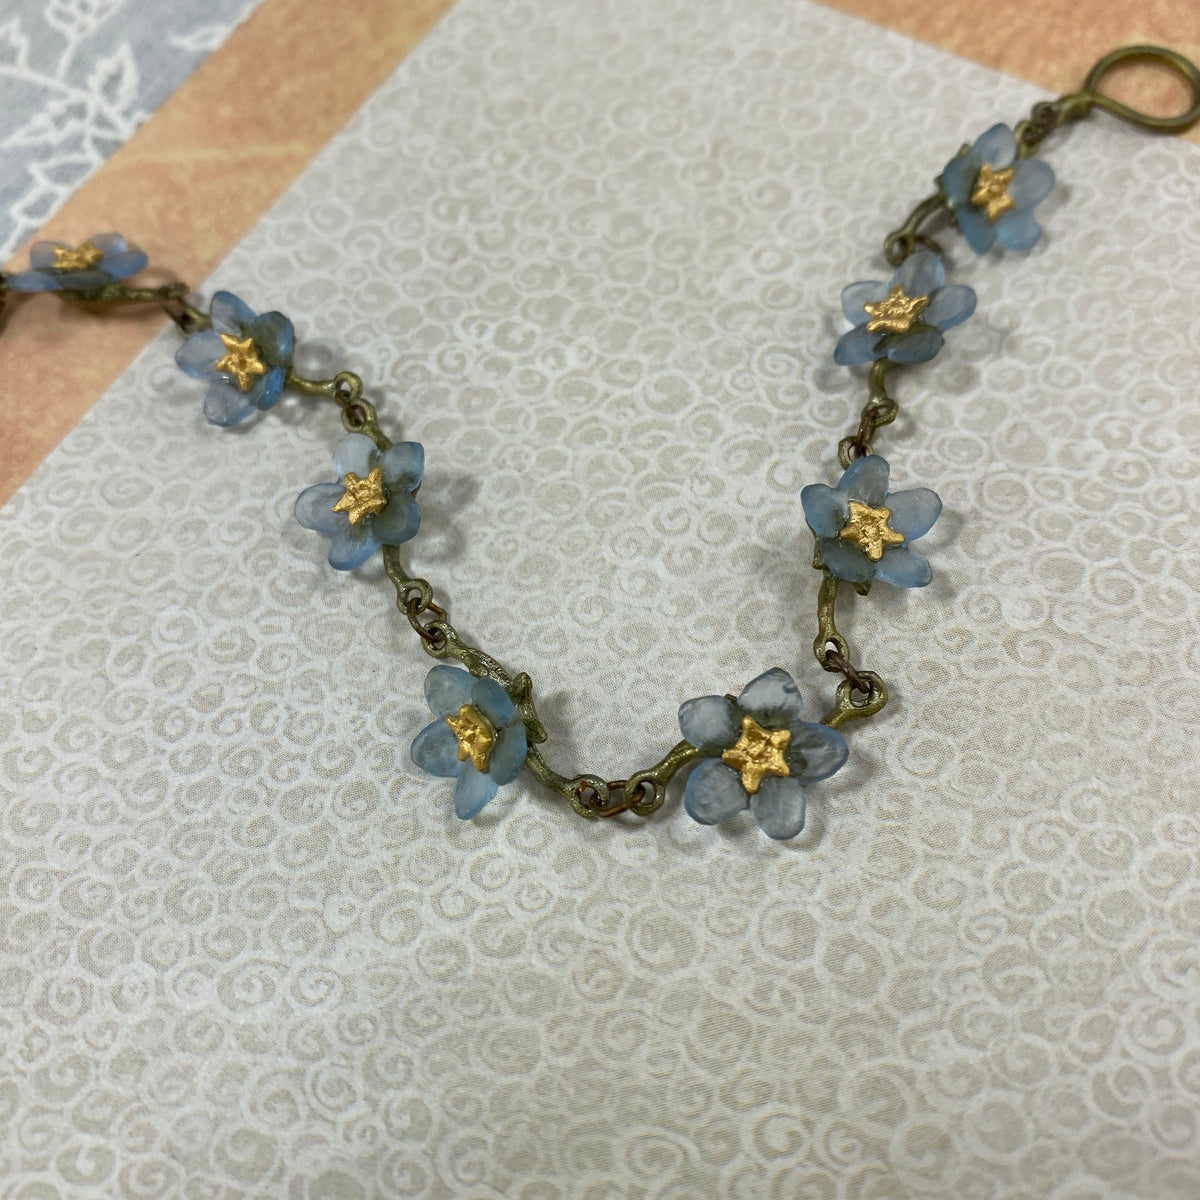 Forget Me Not Bracelet - Heart of the Home PA